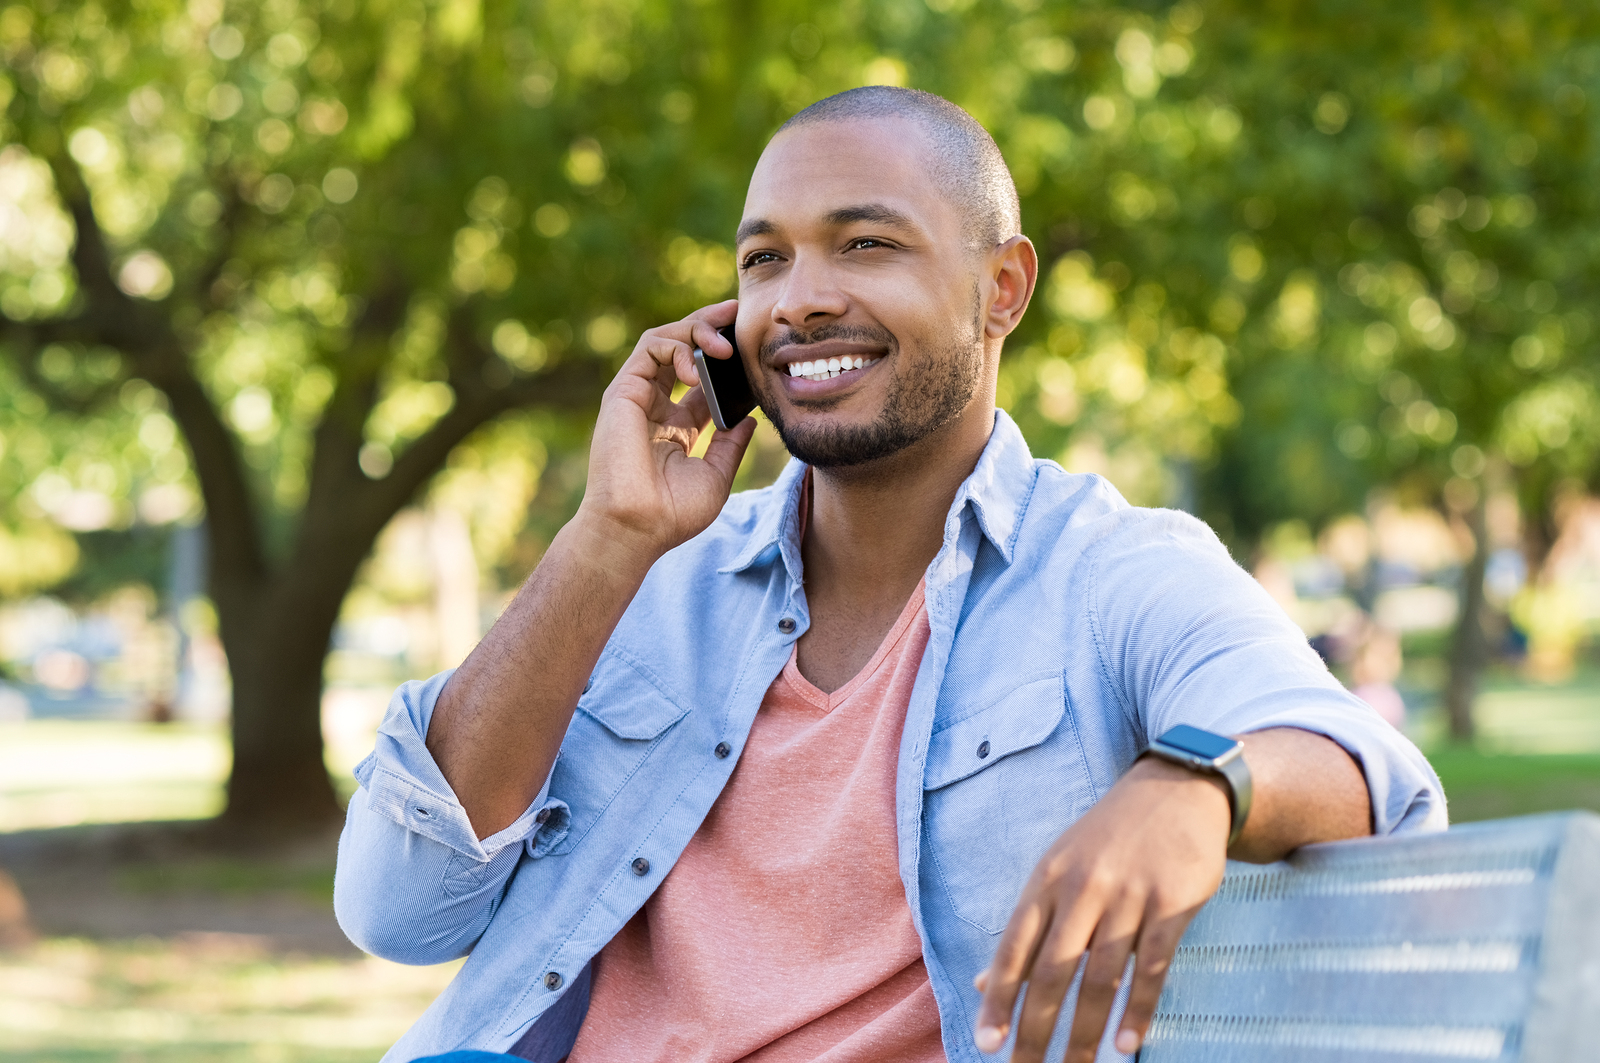 Handsome african man talking on phone at park. Young black man talking on cellphone while sitting on bench outdoor. African american smiling guy in a happy conversation at mobile phone.